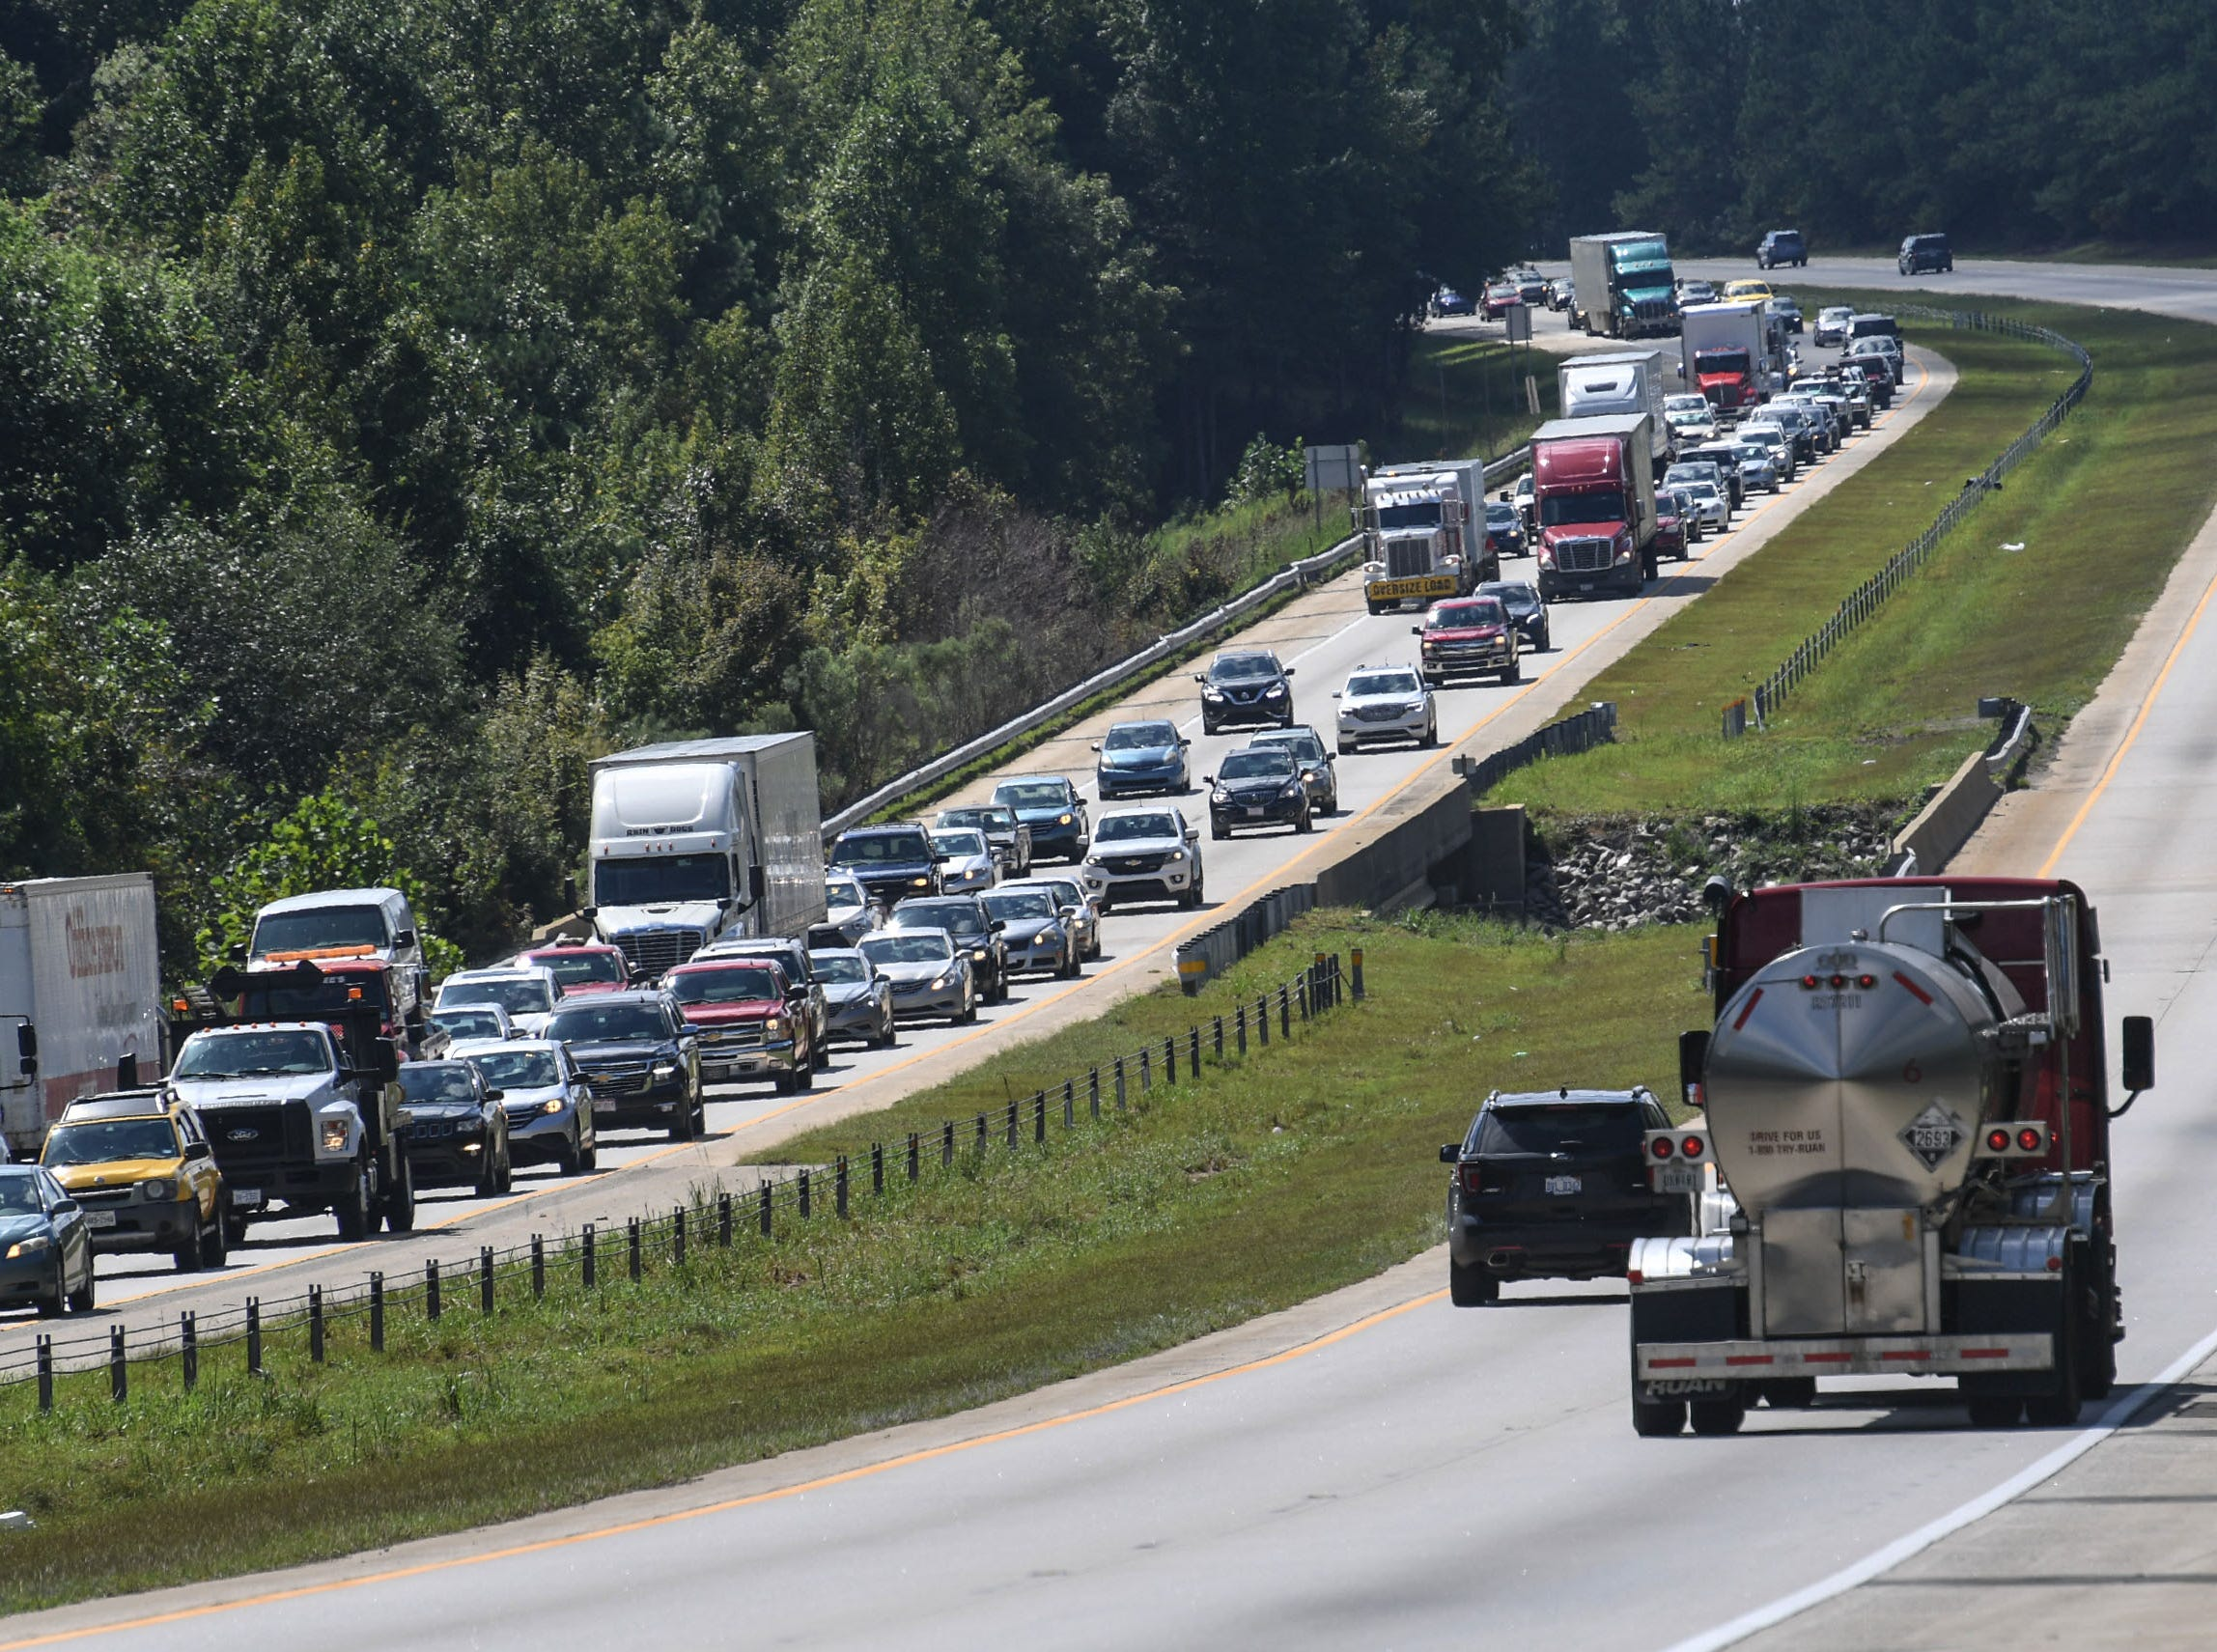 Sep 11, 2018; Wilmington, NC, USA; Cars drive slowly away from the coast on I-40 in Garner, N.C. on Tuesday, September 11, 2018. Hurricane Florence is expected to arrive in Wilmington, North Carolina late Thursday night through Friday morning.